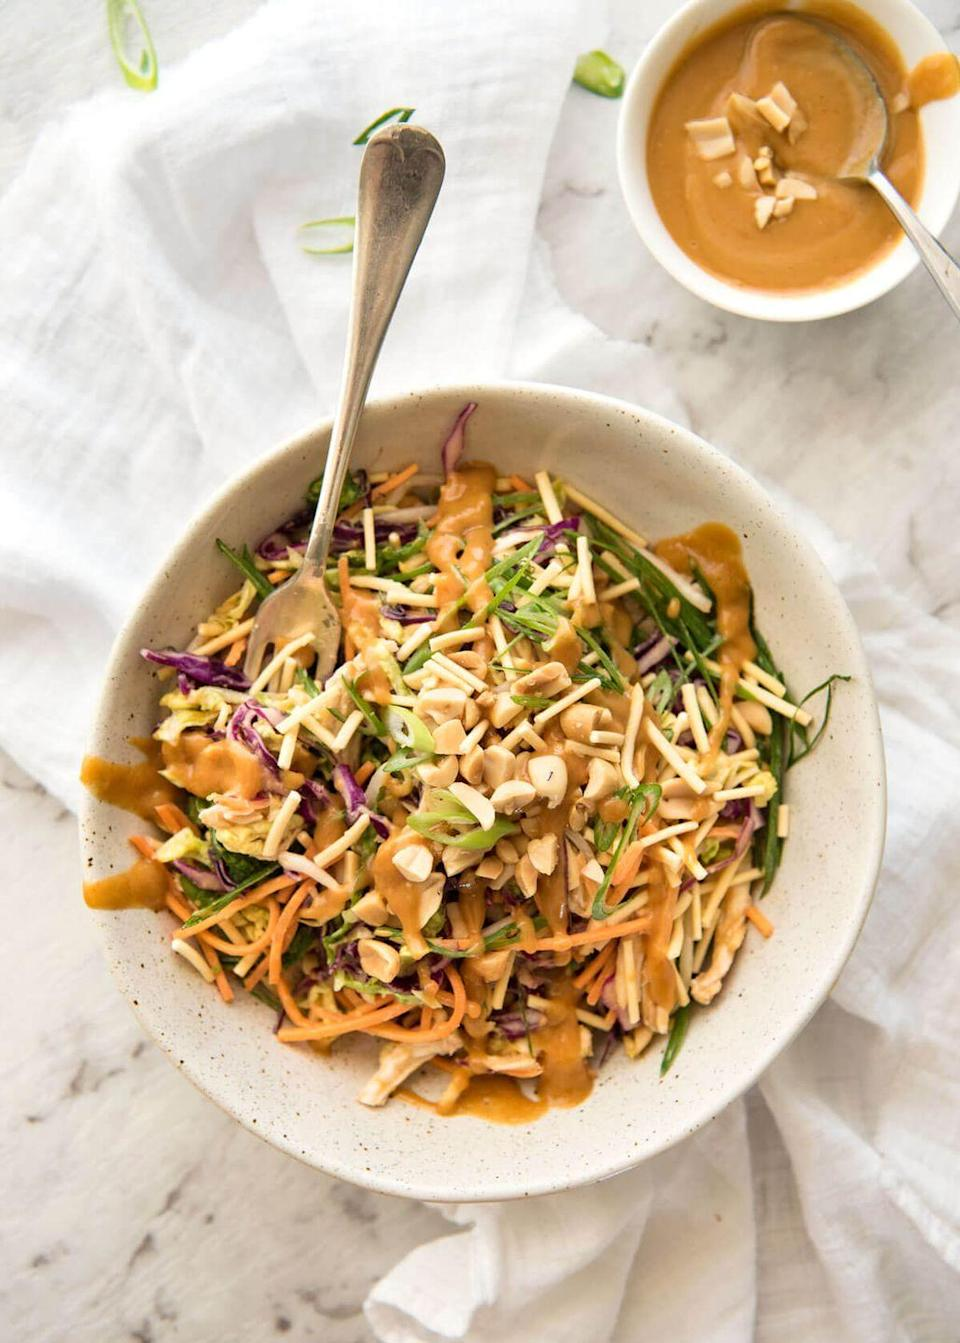 """<p>Your fave restaurant salad, without actually having to leave your house.</p><p>Get the recipe from <a href=""""http://www.recipetineats.com/chinese-chicken-salad-with-asian-peanut-salad-dressing/"""" rel=""""nofollow noopener"""" target=""""_blank"""" data-ylk=""""slk:Recipe Tin Eats"""" class=""""link rapid-noclick-resp"""">Recipe Tin Eats</a>.</p>"""